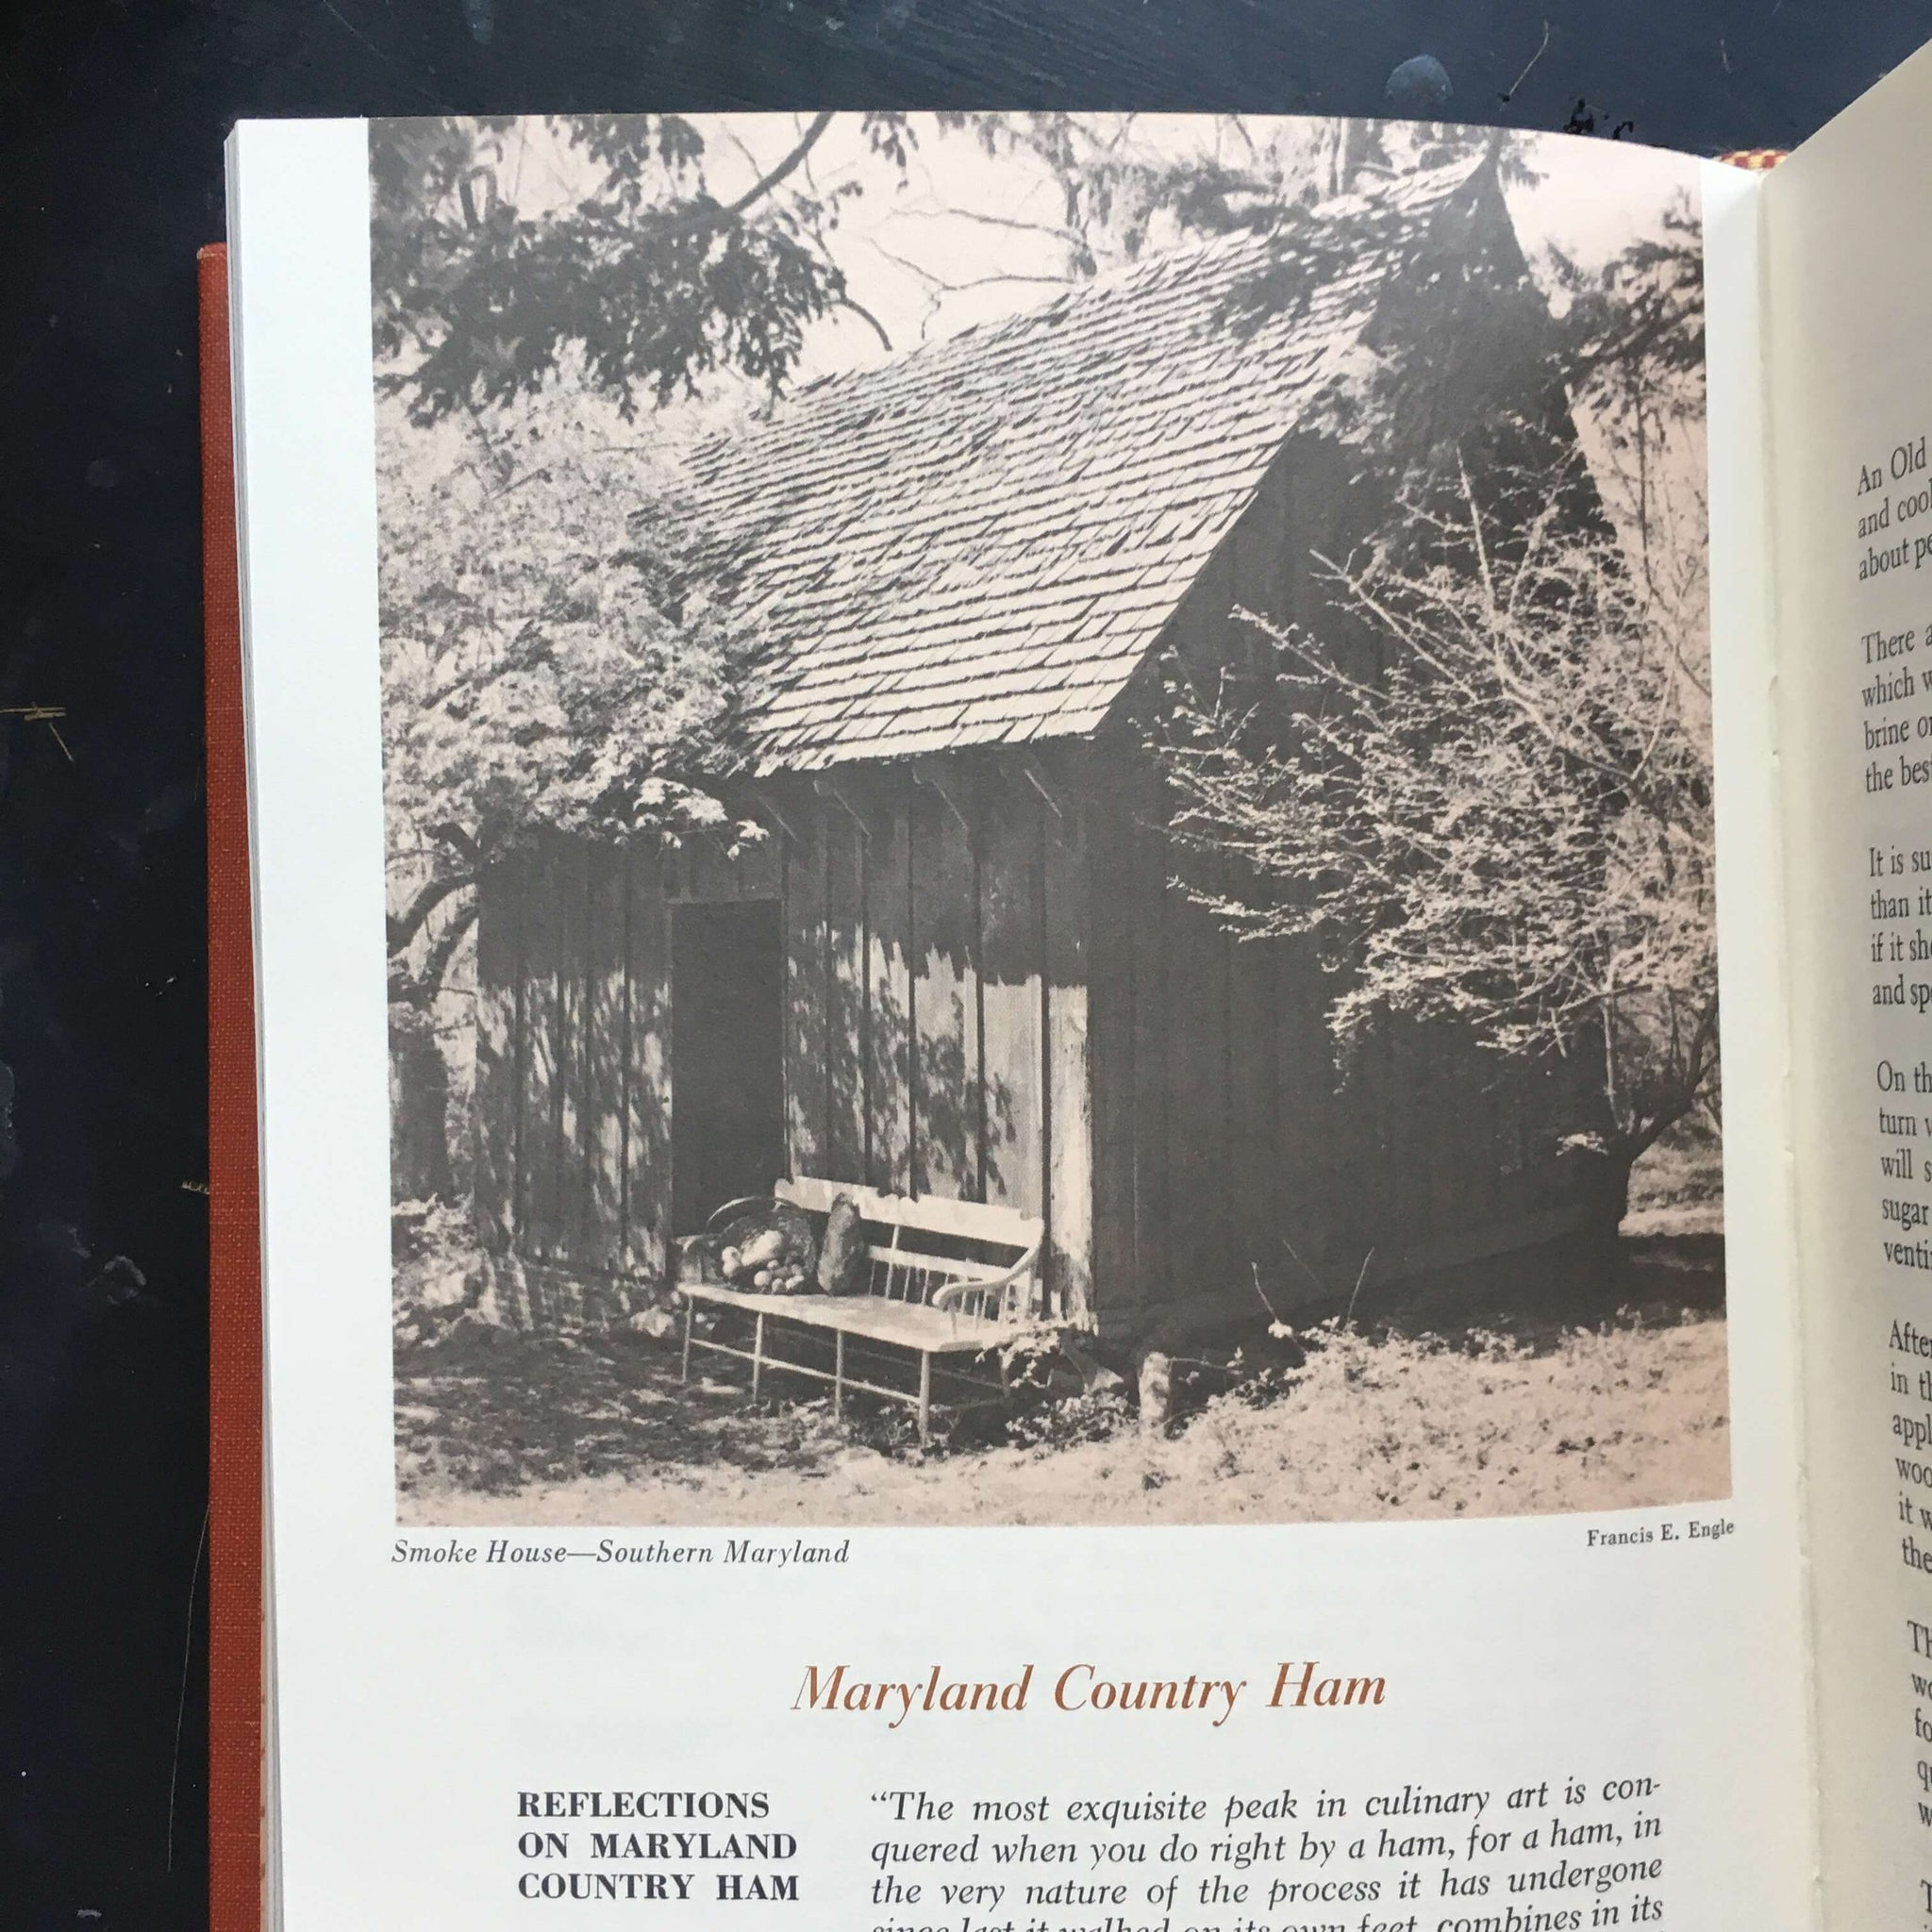 Vintage 1960s Maryland Cook - Maryland's Way - The Hammond Harwood House Cook Book - 1966 Edition